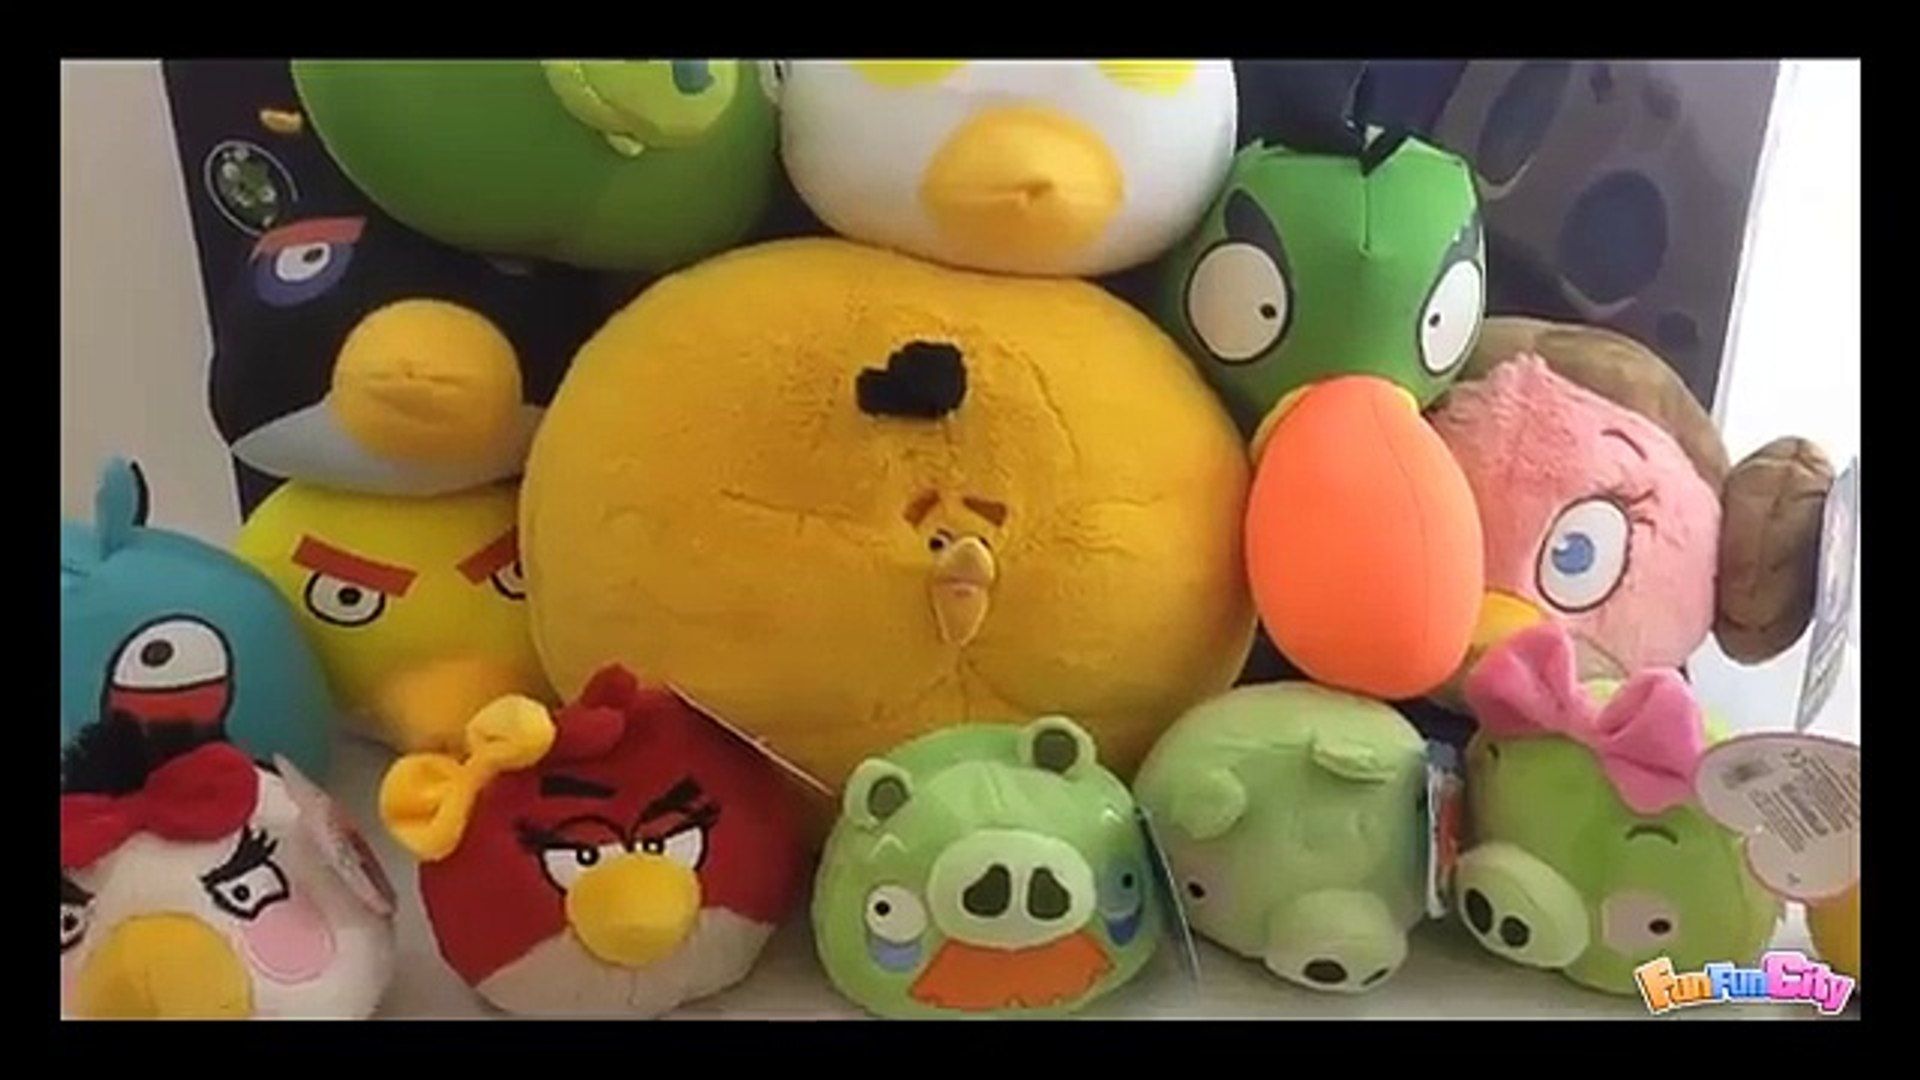 Angry Birds, Bad Piggies, Red Bird, Terence, Matilda, Bomb Bird, Hal,  Chuck, Stella, The Blues